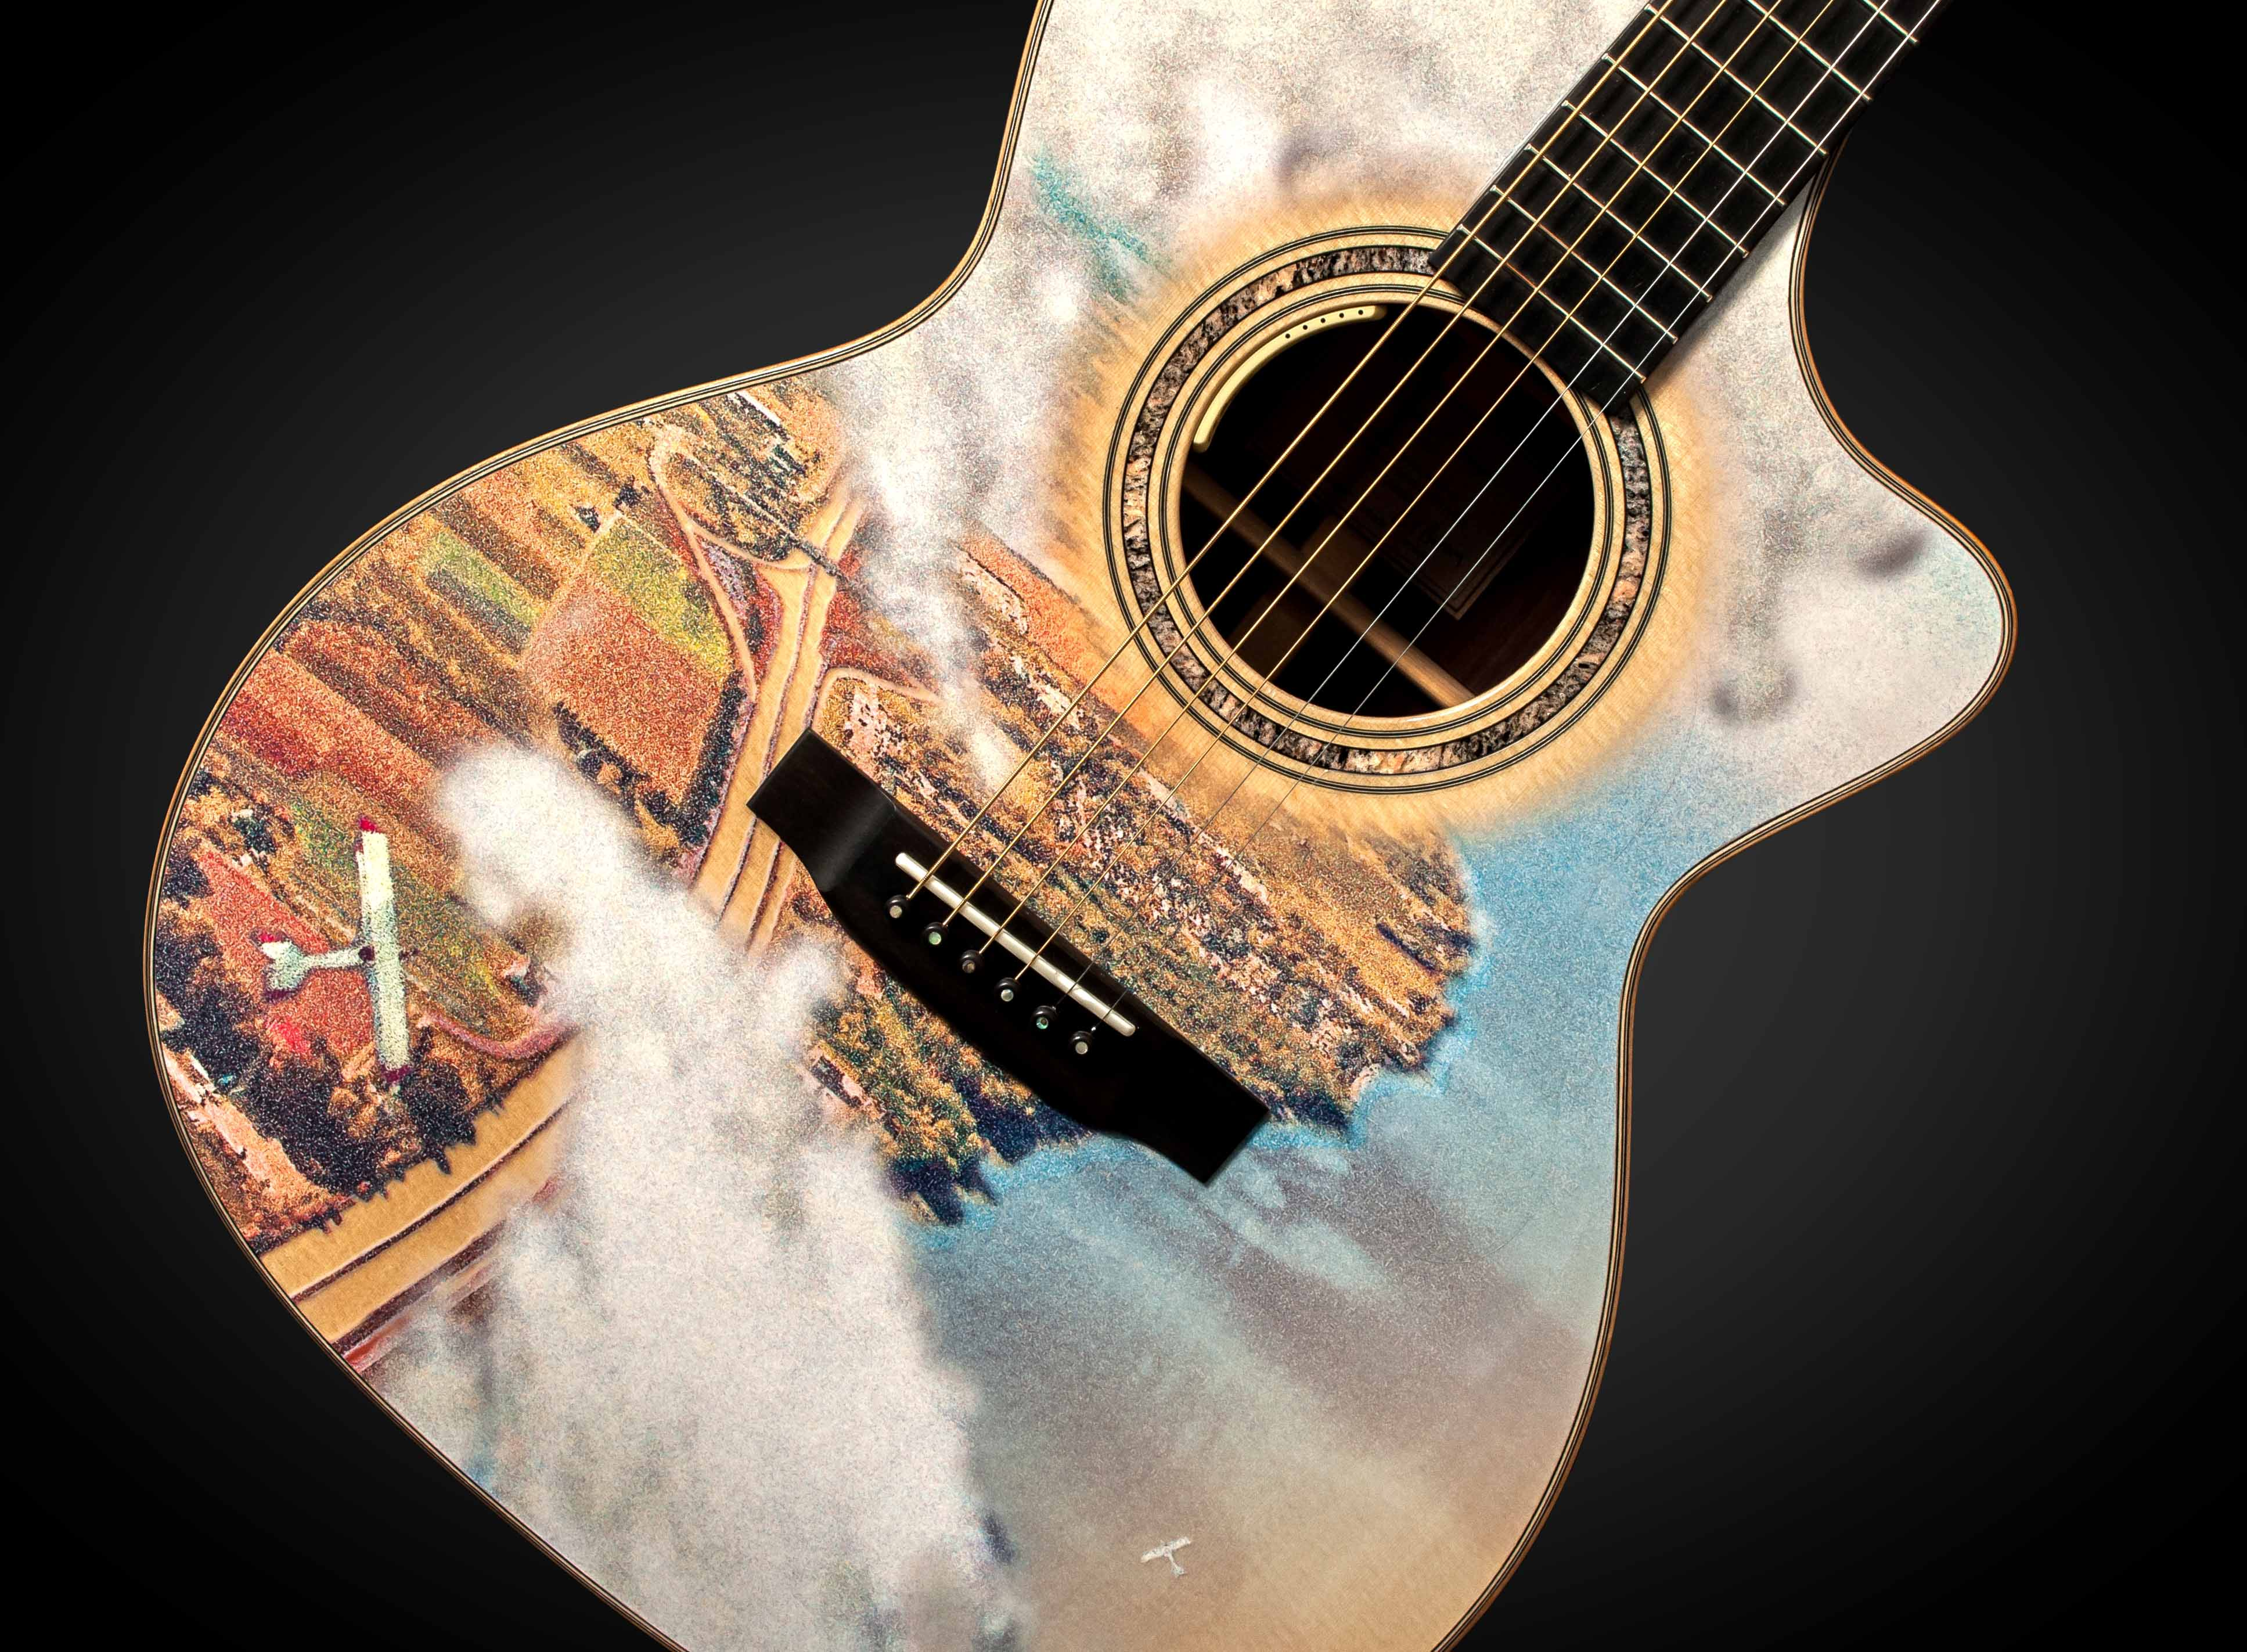 Photograph of the front of a guitar body. The body has an aerial view of a landscape looking down through clouds. There are two small white aeroplanes flying over a patchwork of fields on the left, a highway and a town which borders a shoreline on the right. The body of water is shades of blue.